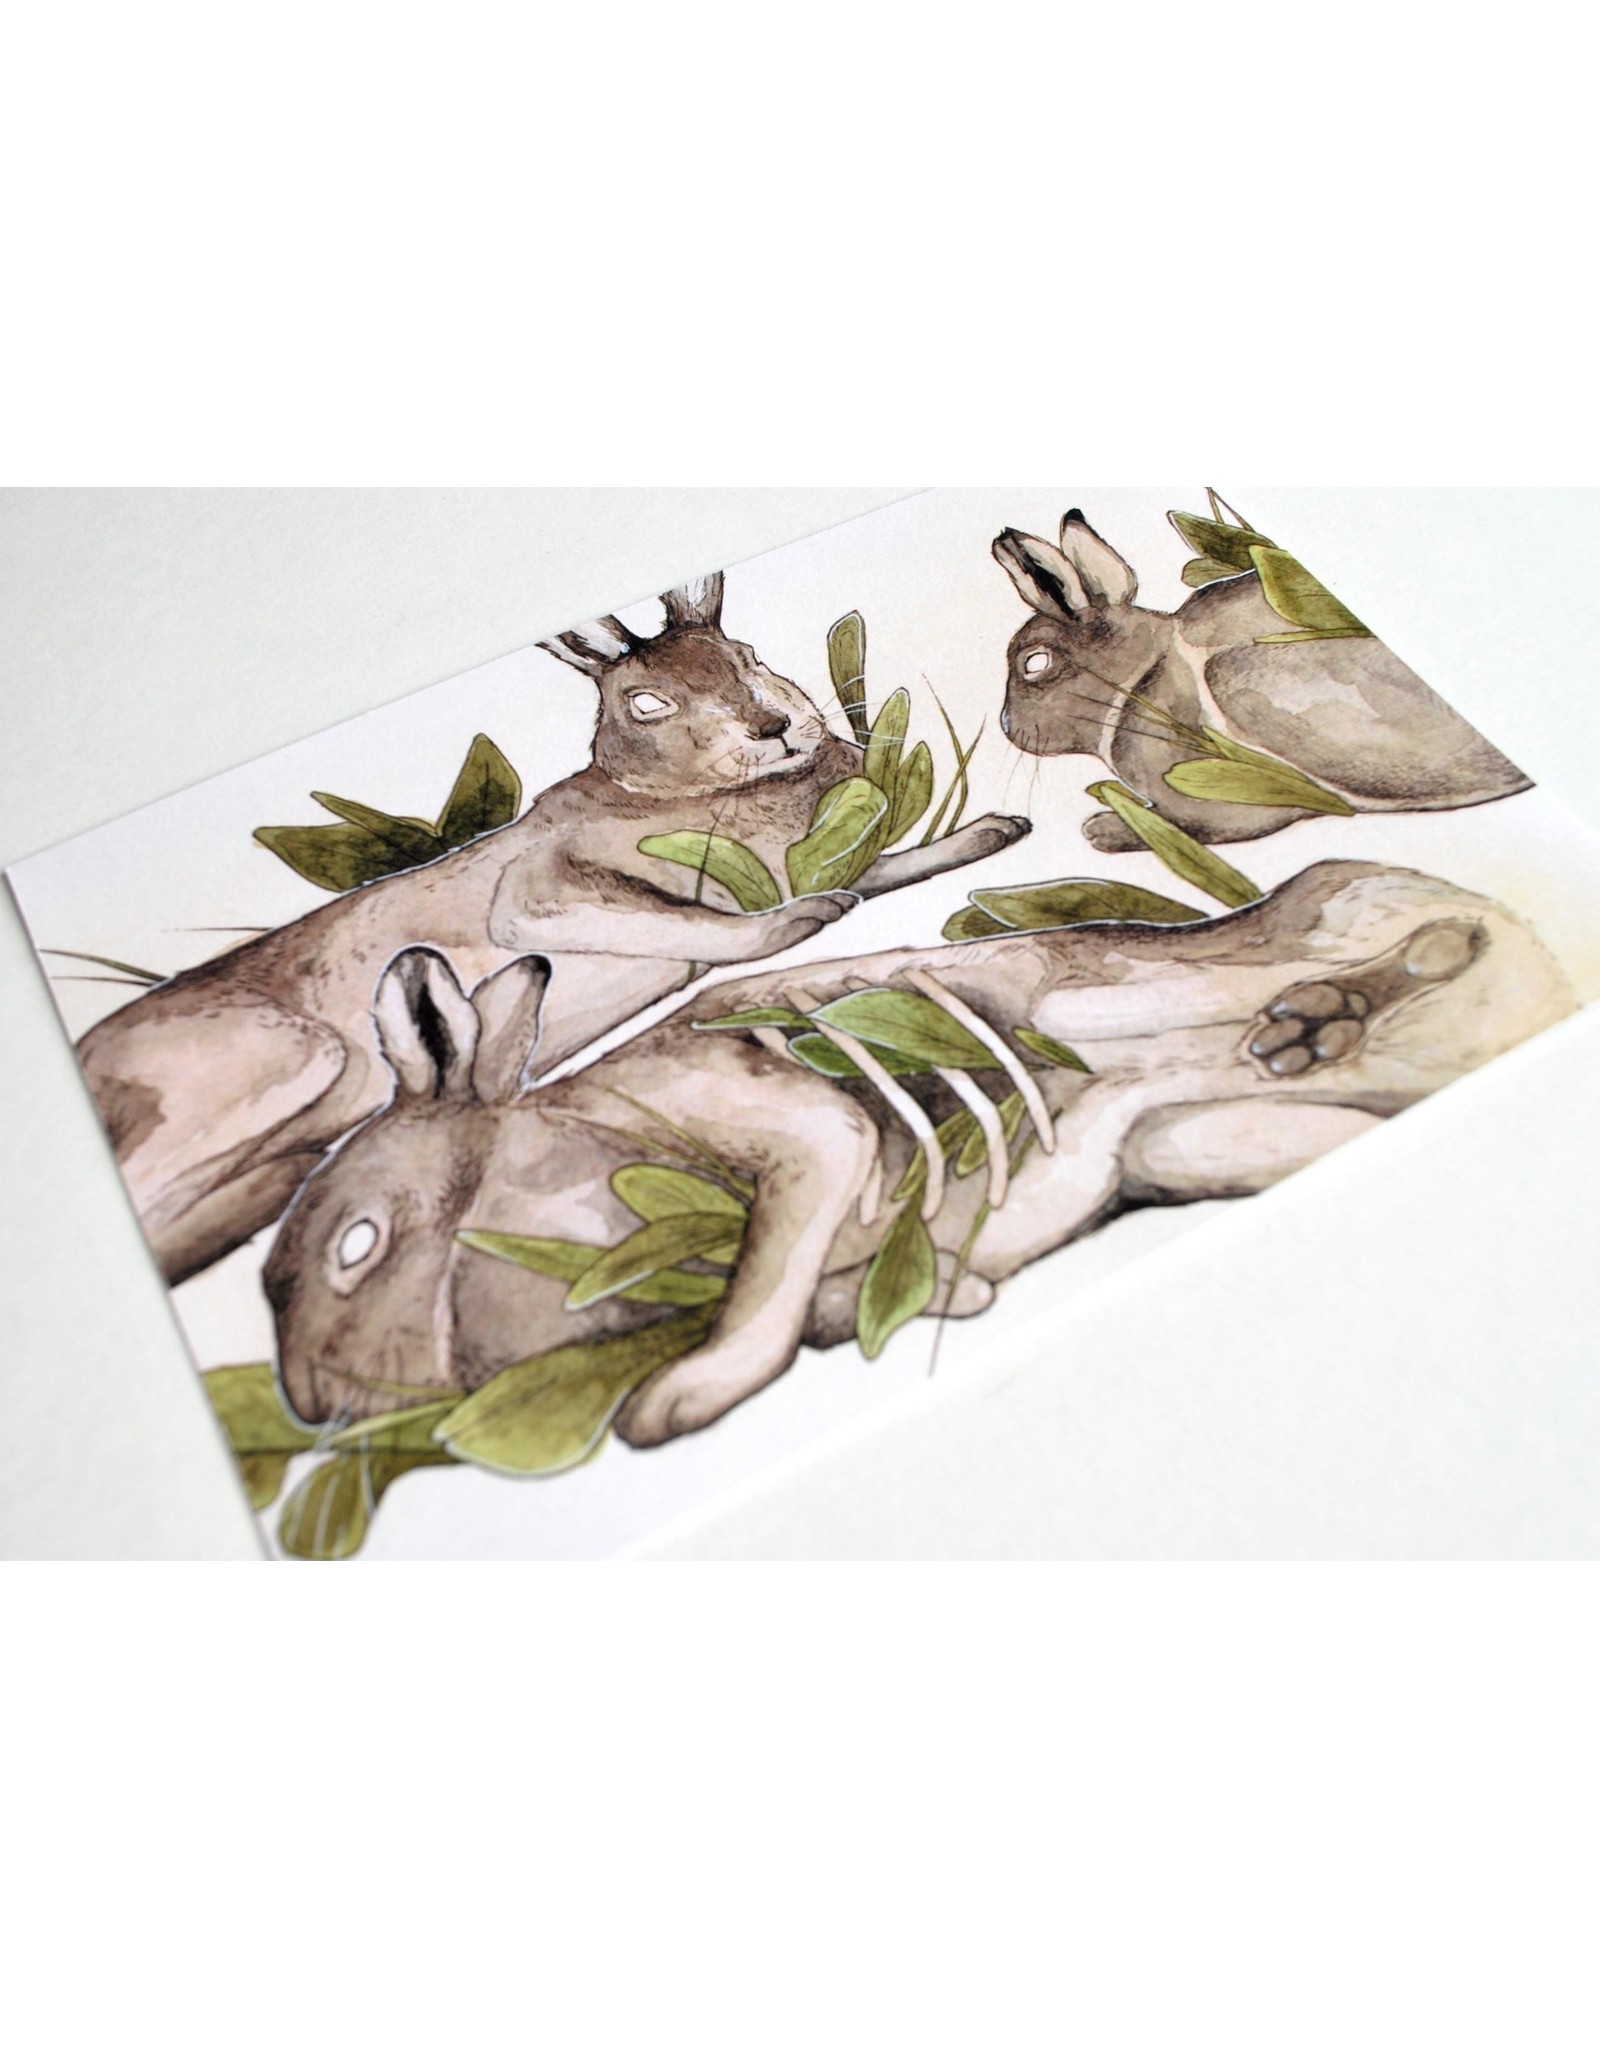 "Shane Tolentino ""Artic Hares"" Digital Print by Shane Tolentino"